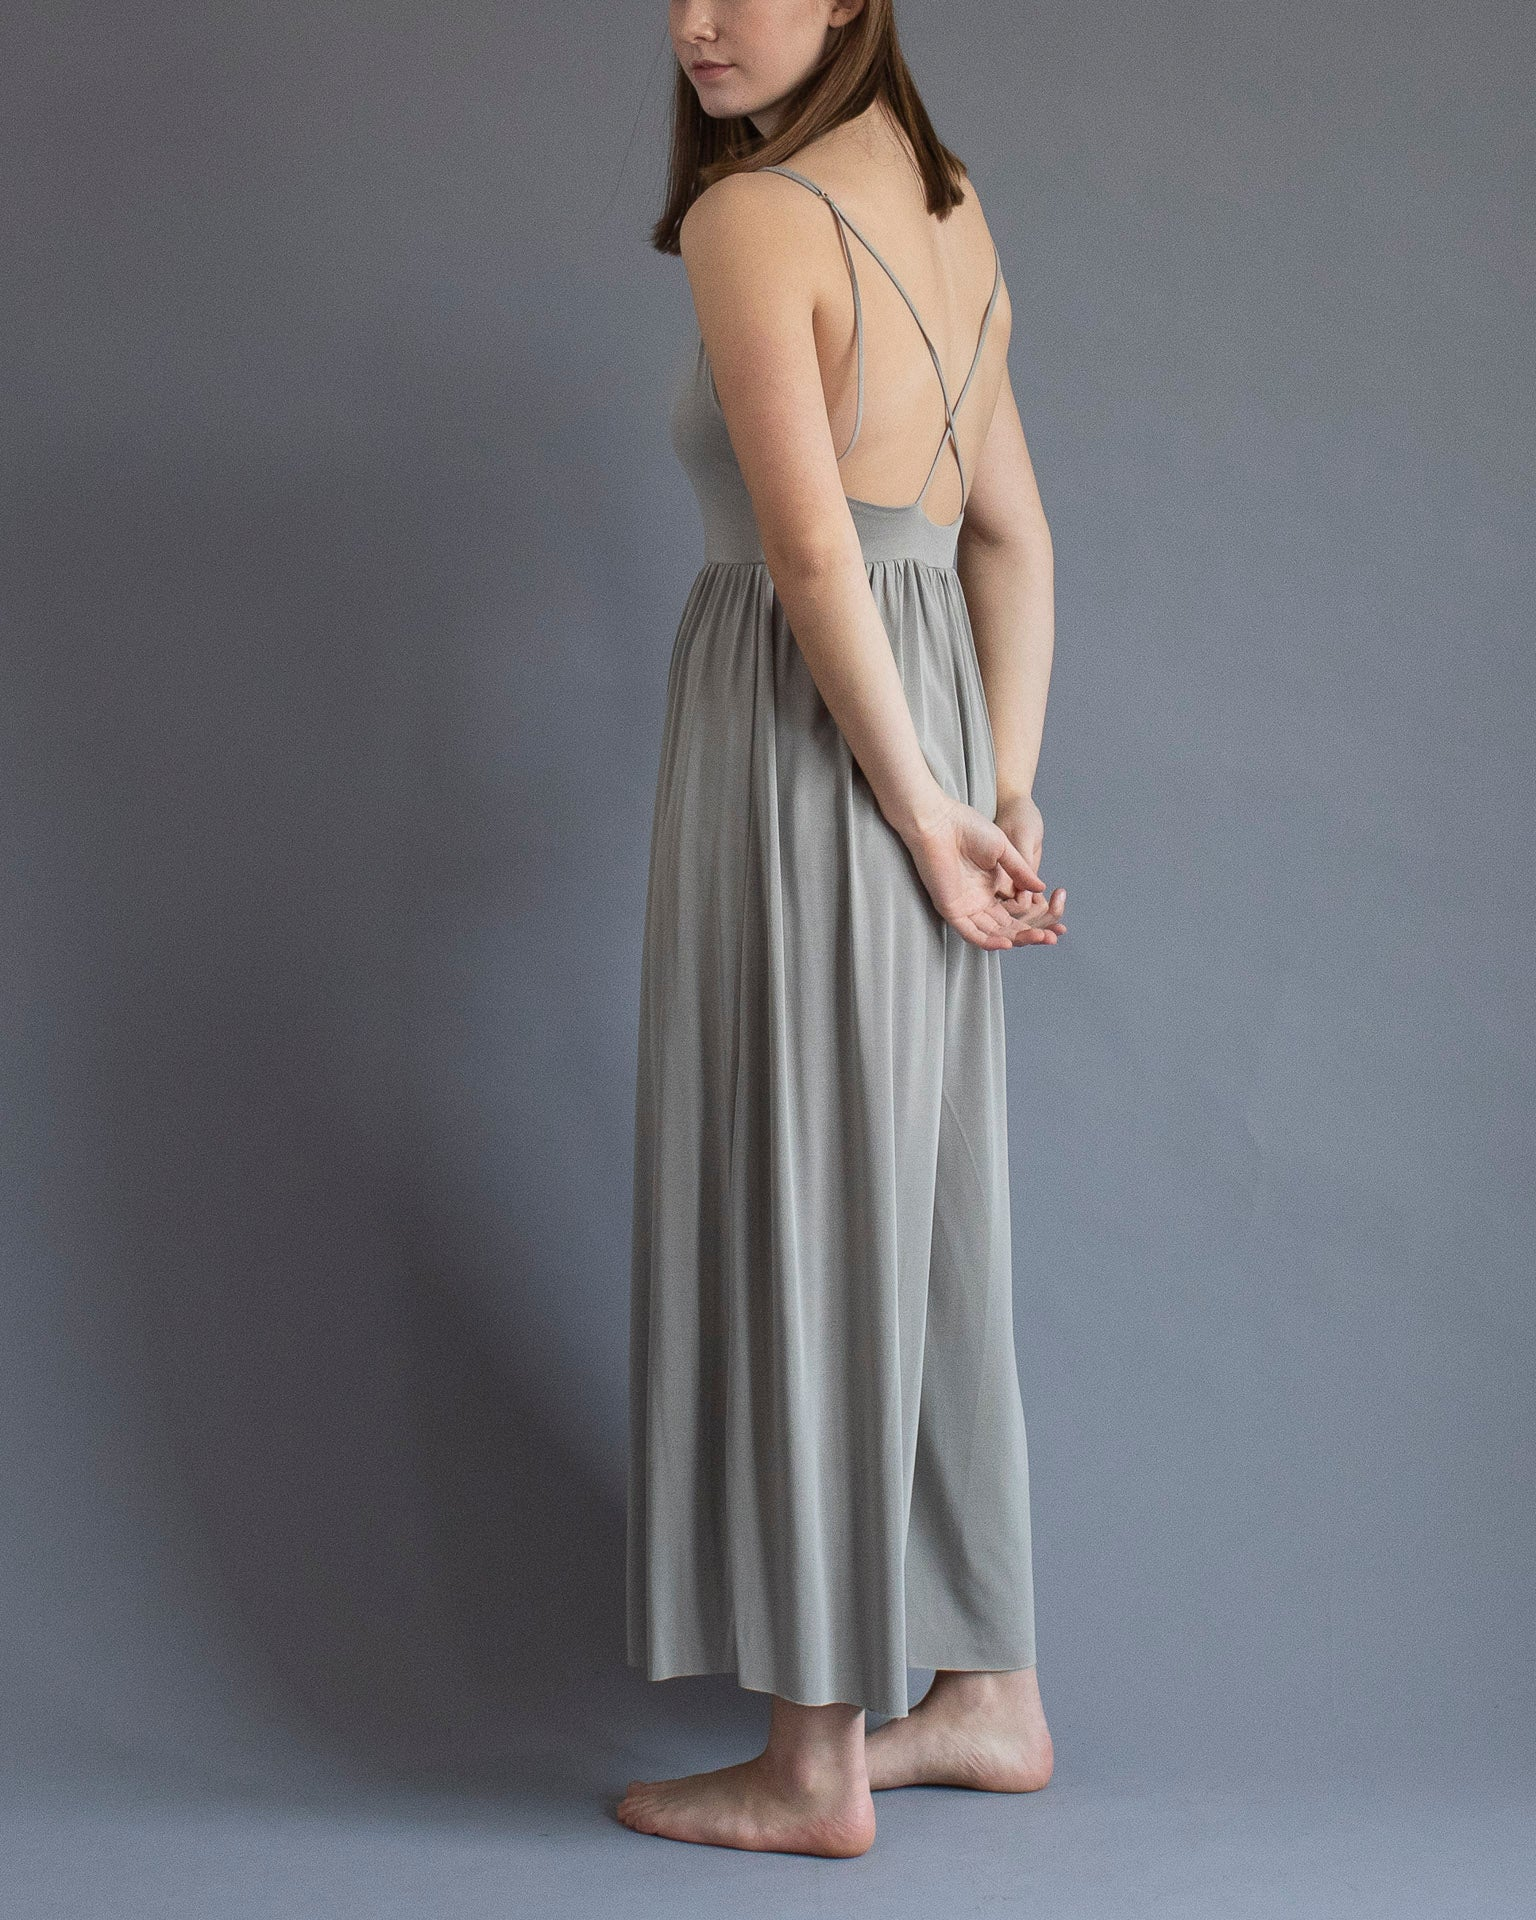 The Soft Grey Jumpsuit